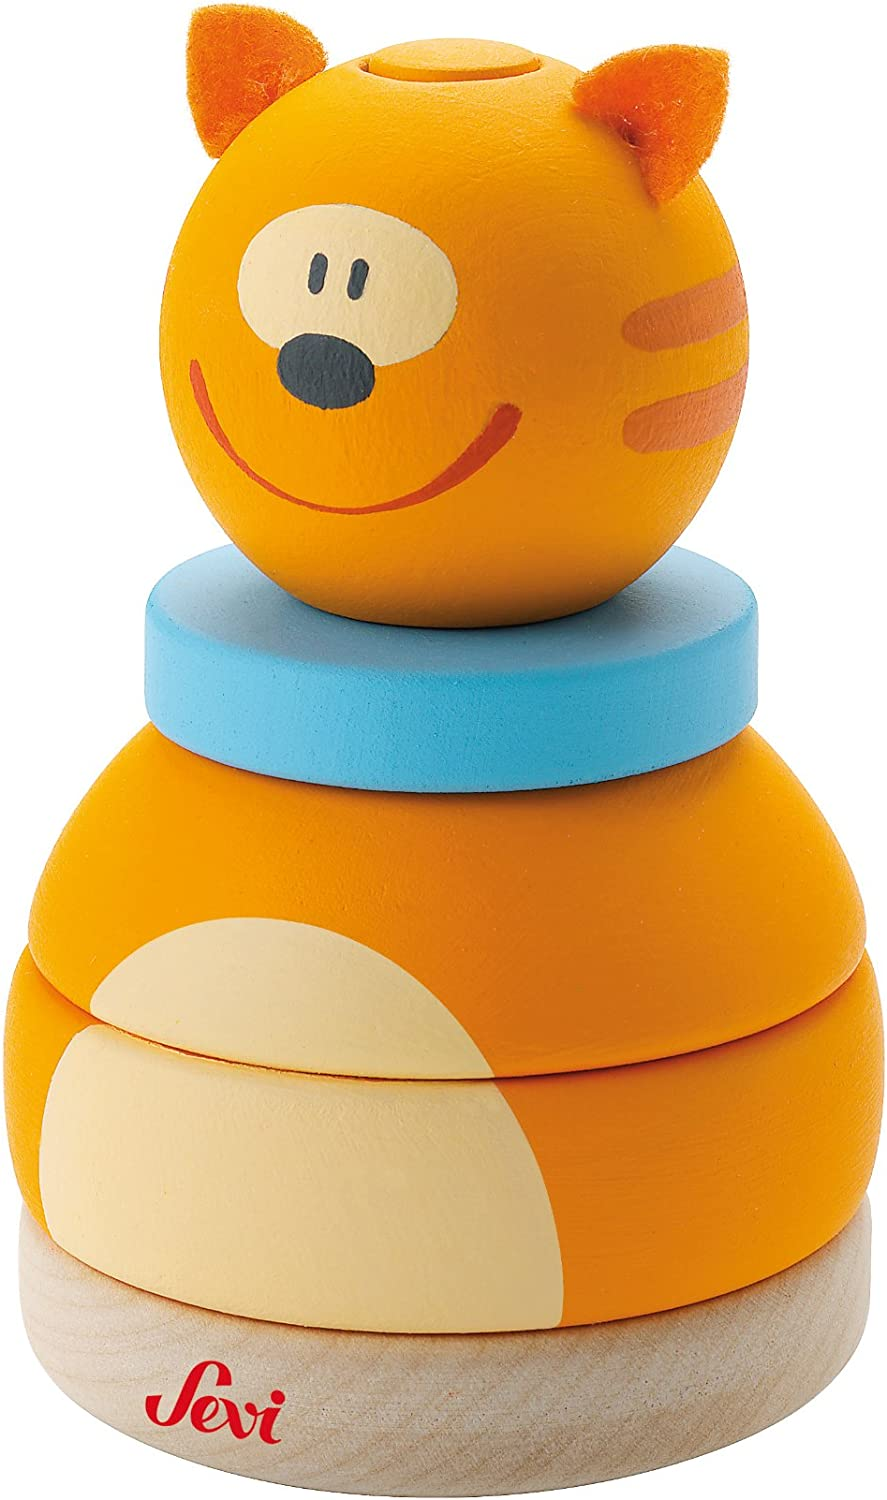 (Cat)  Sevi Stacking Building Toys (Cat)